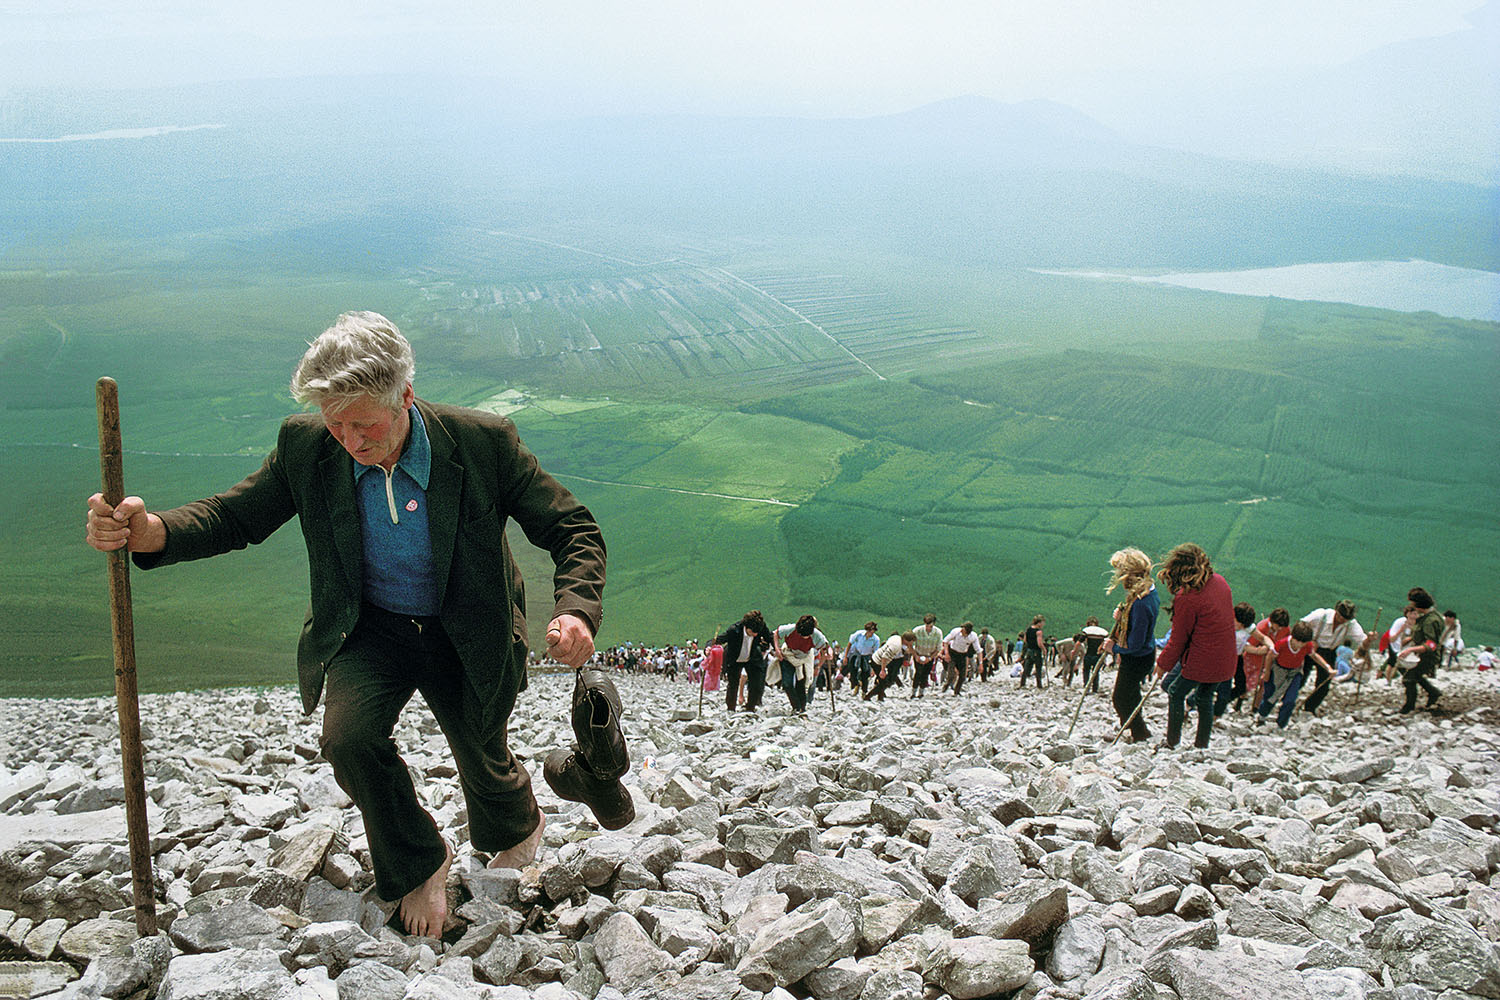 Ireland, County Mayo, Croagh Patrick Mount, traditional pilgrimage on the last Sunday of July, pilgrims climbing the mountain